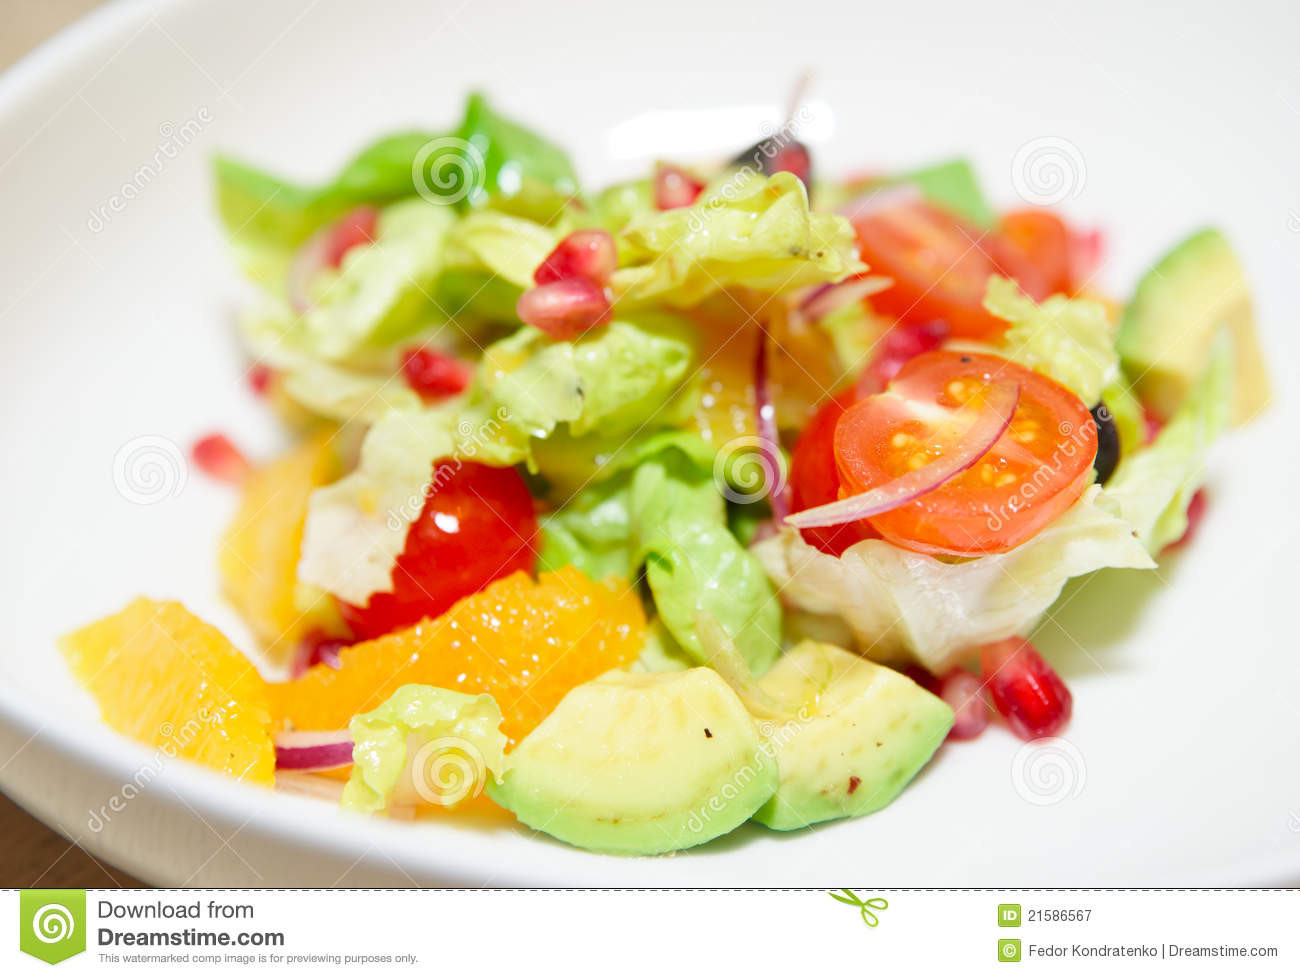 Healthy Vegetable Appetizers  Healthy Ve able Appetizer Royalty Free Stock graphy